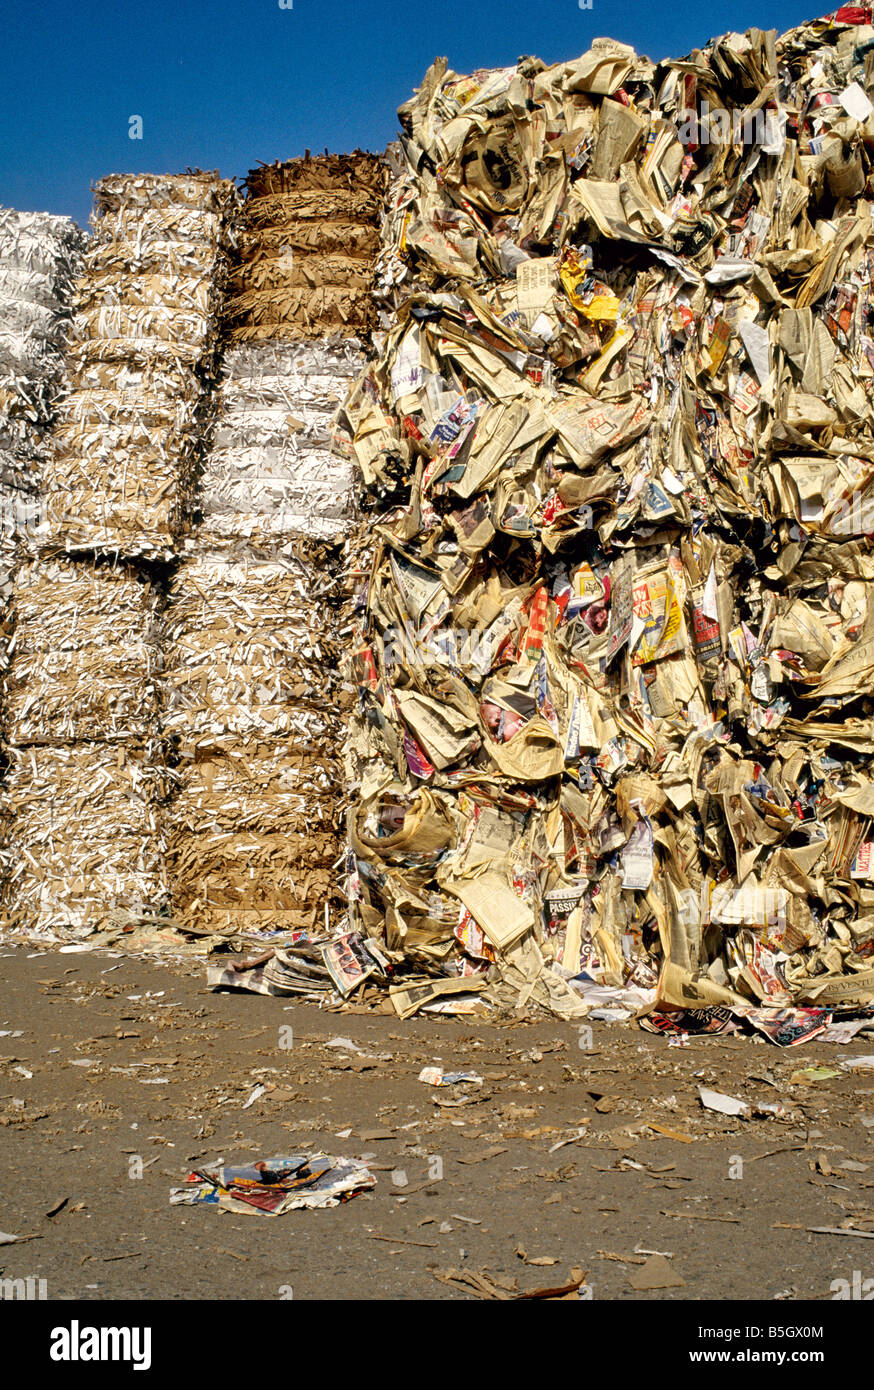 Stacked bundles of shredded & baled paper to be recycled. - Stock Image